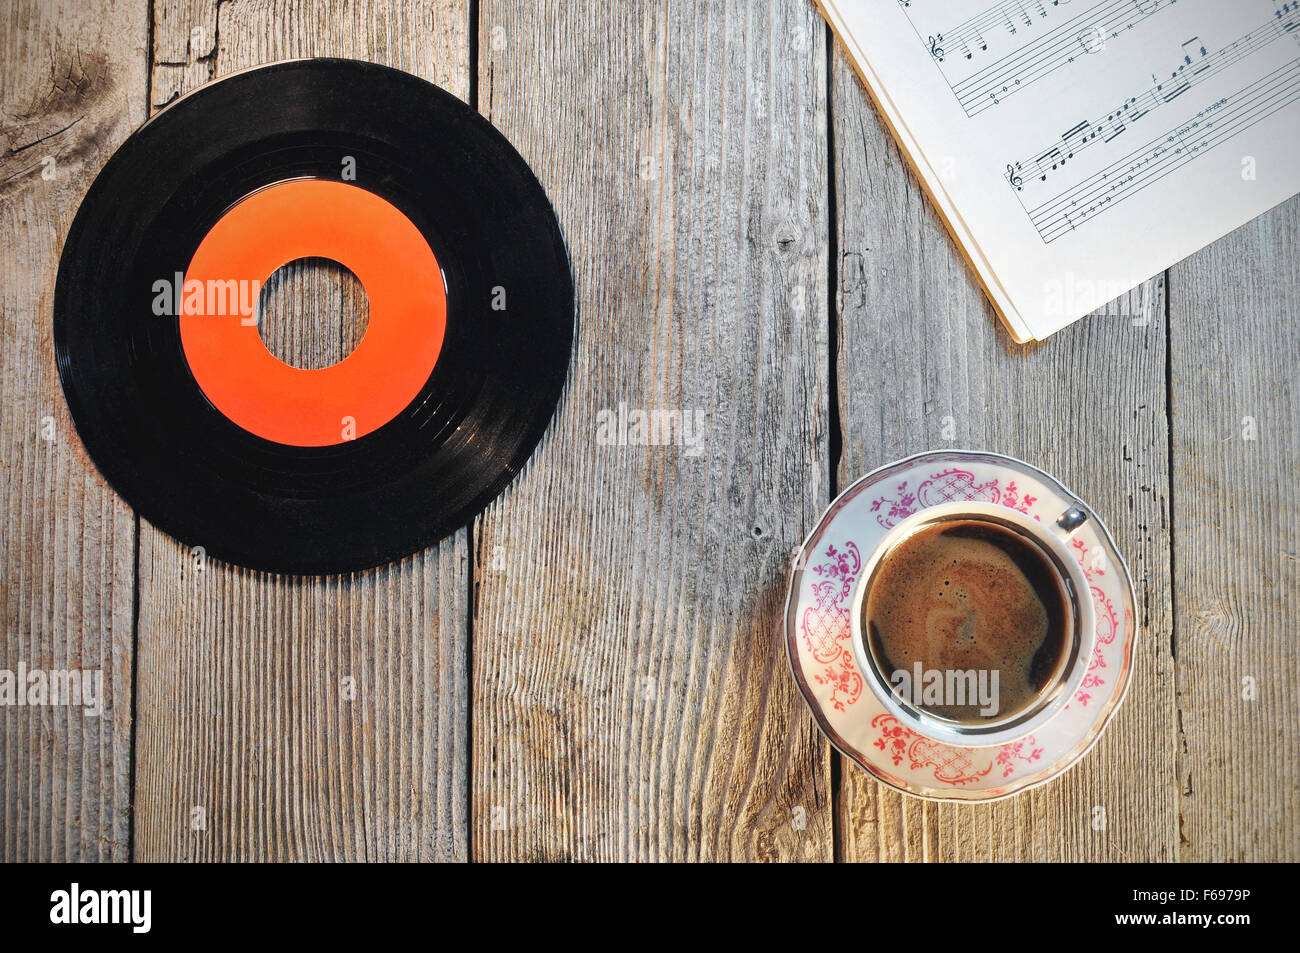 Old vinyl record cup of coffee and music notes on a wooden table old vinyl record cup of coffee and music notes on a wooden table geotapseo Images